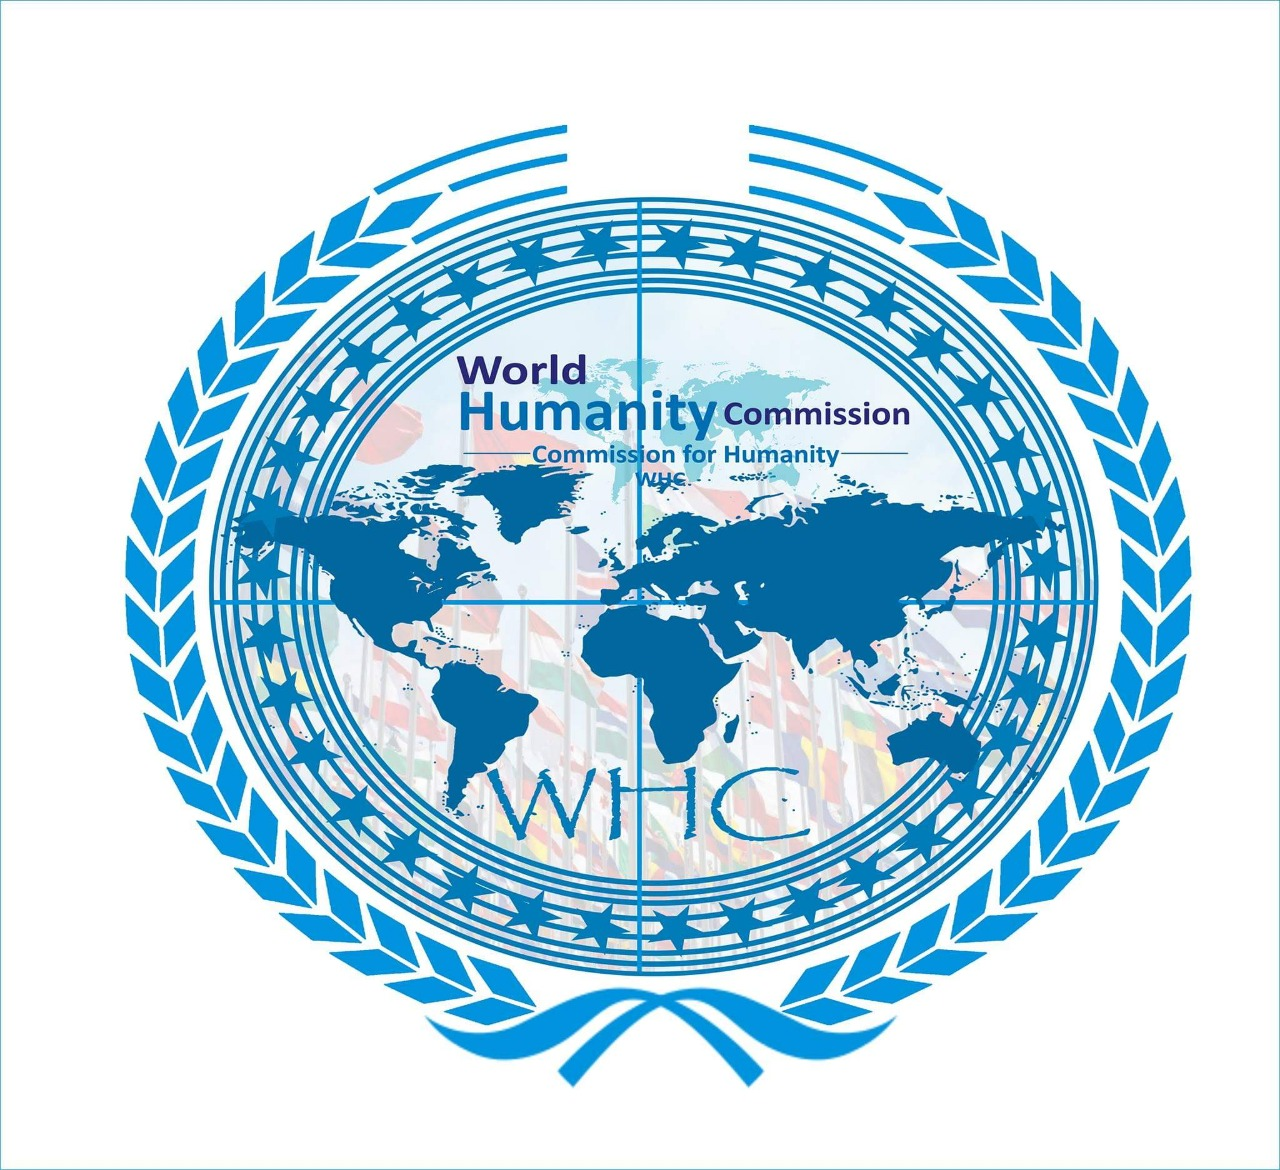 World Humanity Commission